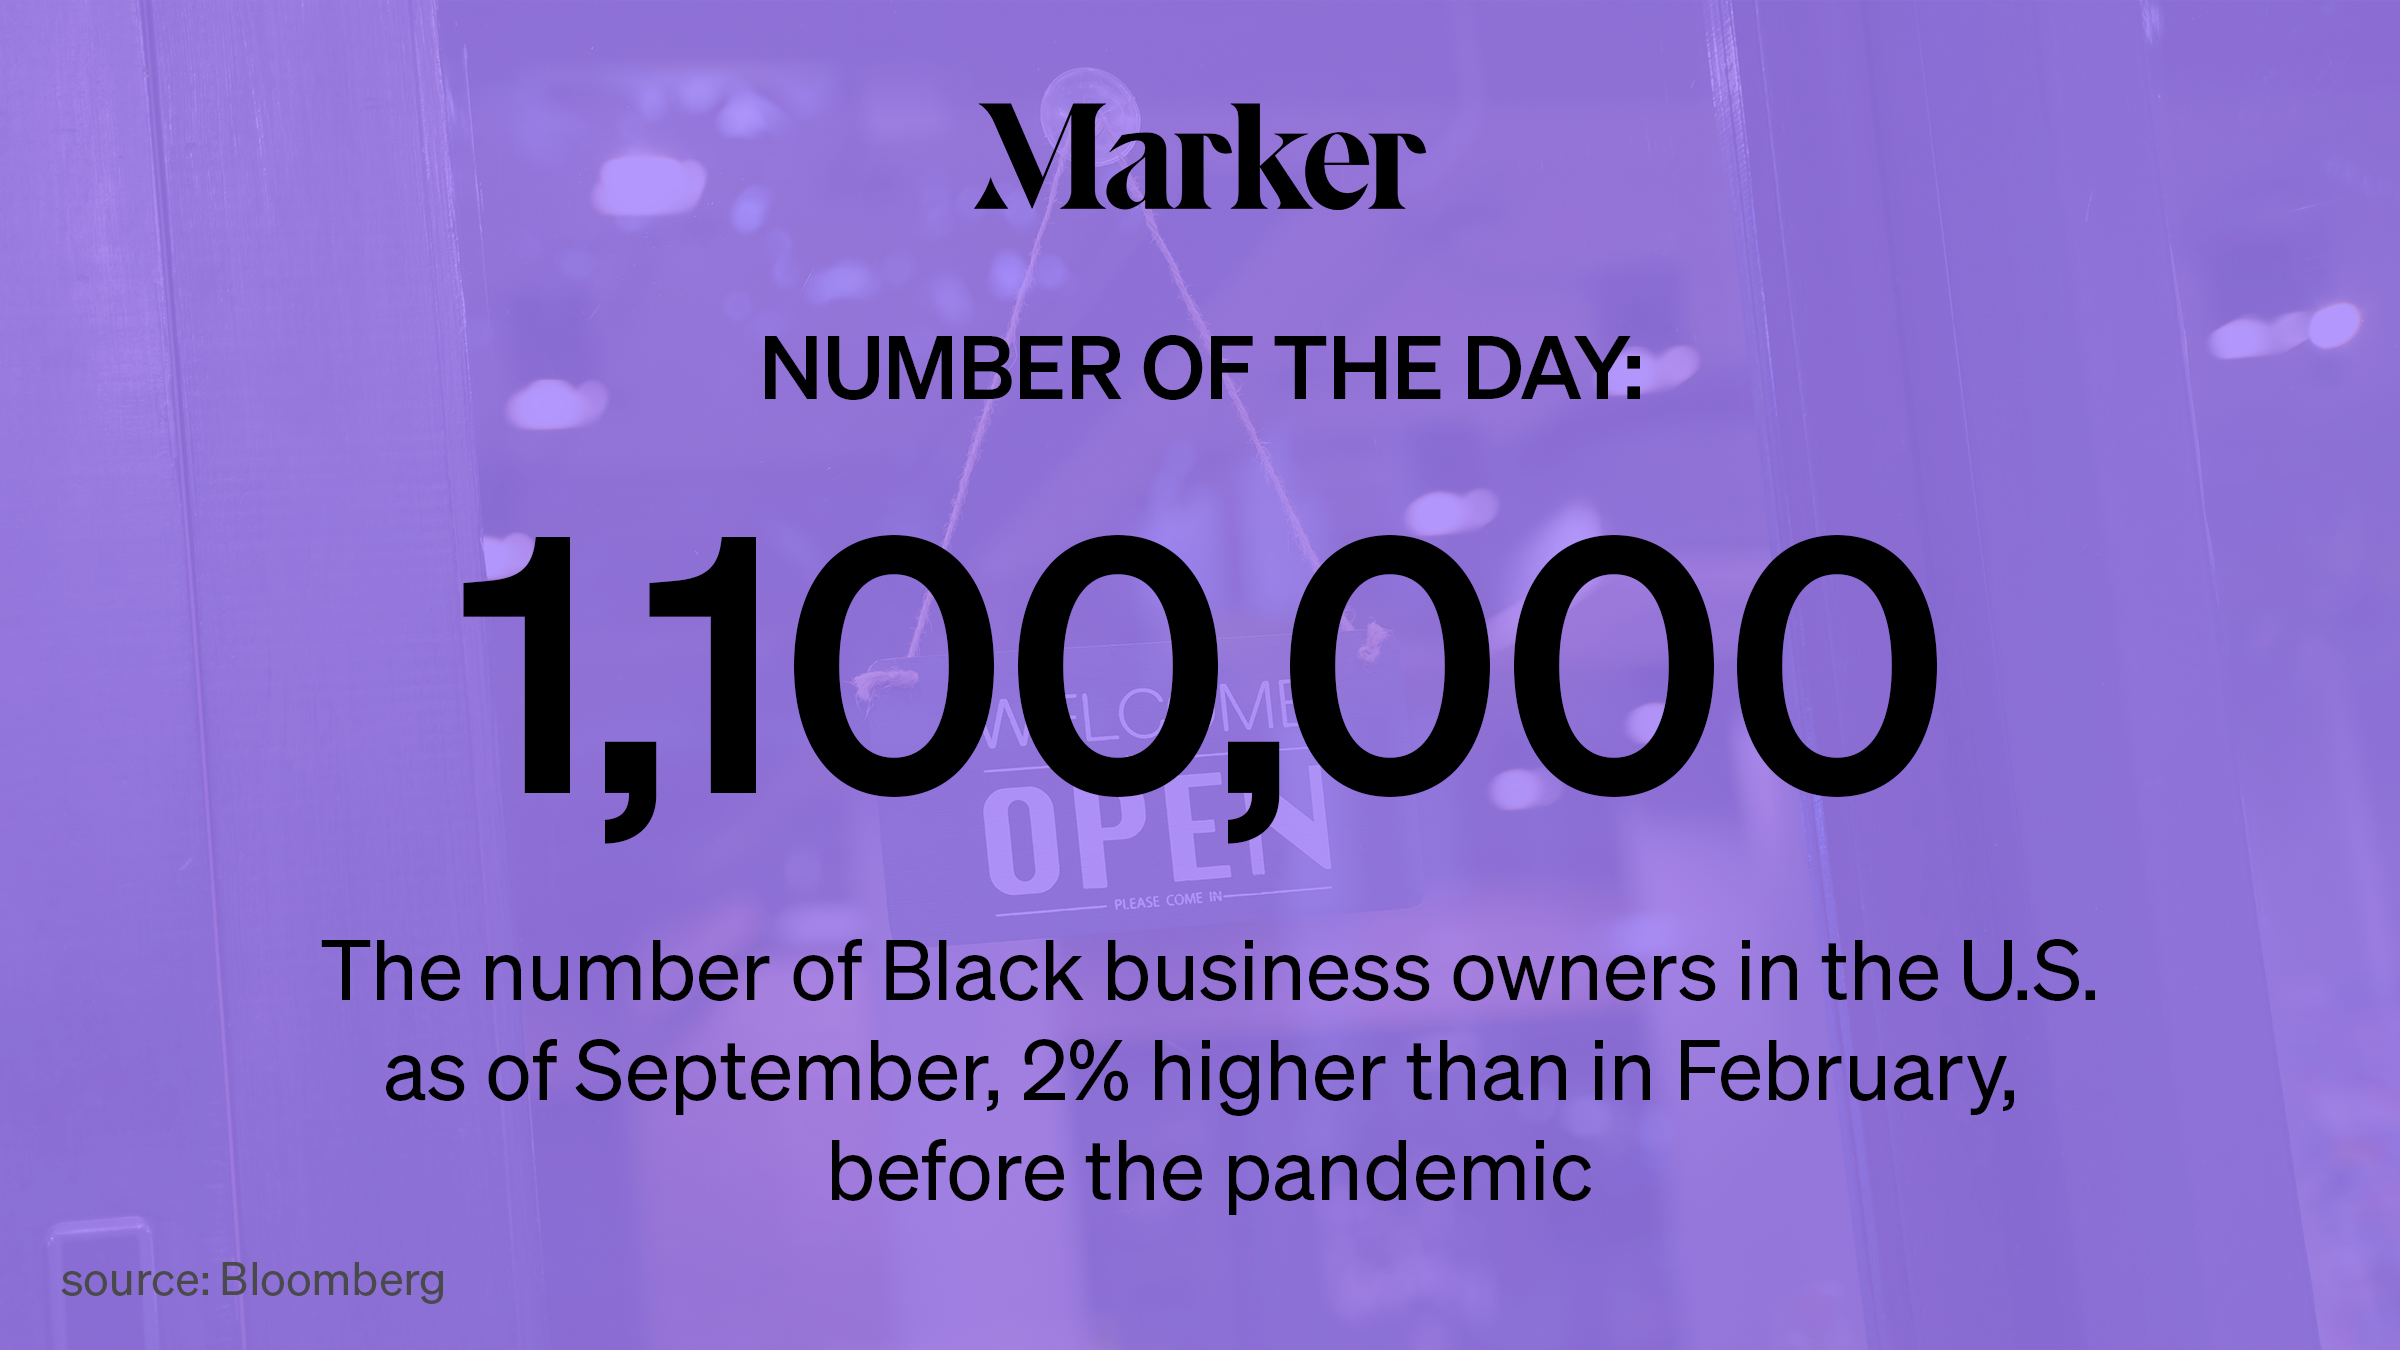 1,100,000—The number of Black business owners in the U.S. as of September, 2% higher than in February, before the pandemic